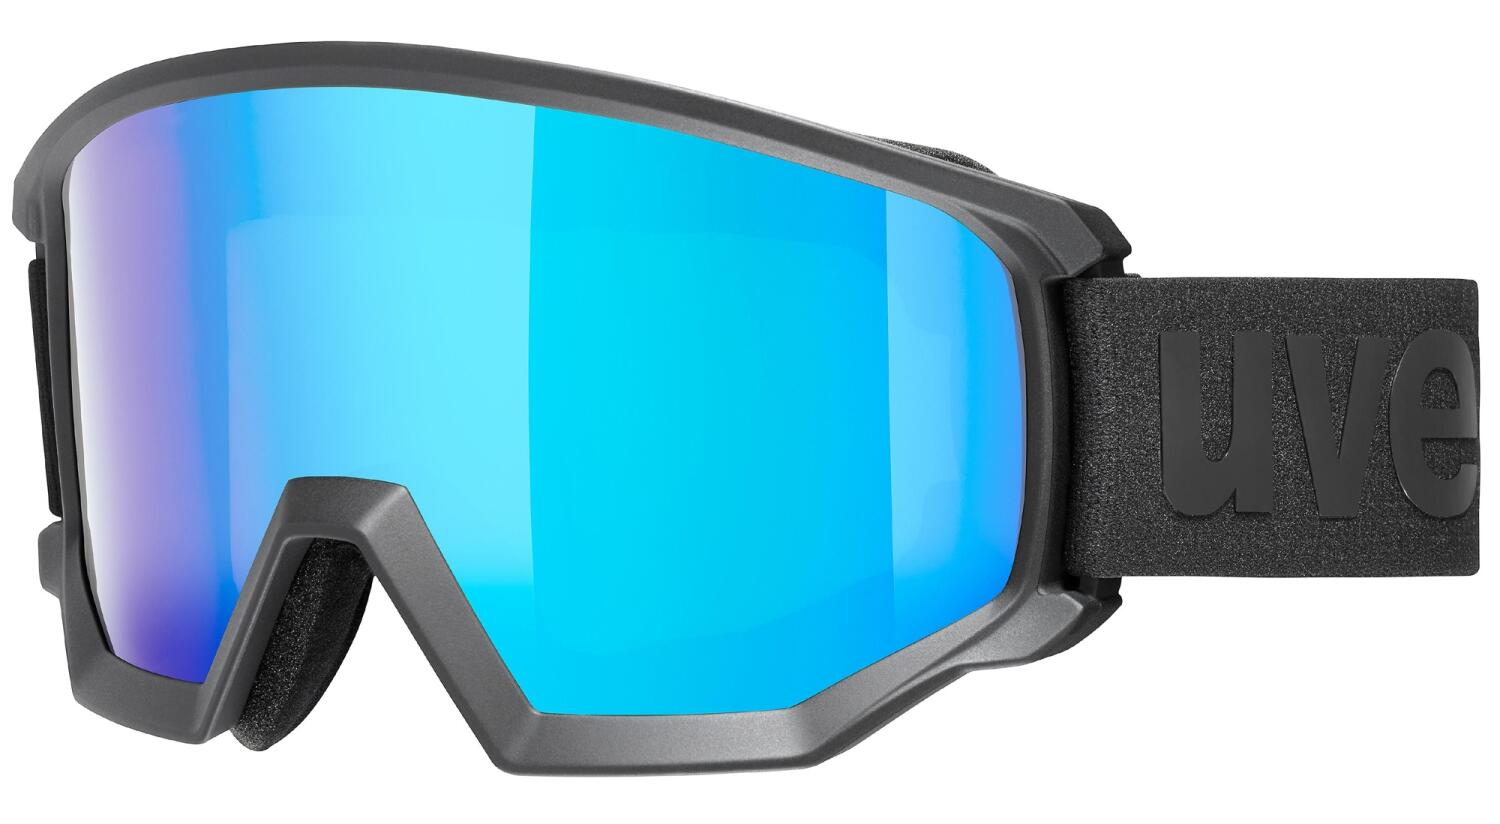 uvex-athletic-cv-skibrille-brillentr-auml-ger-farbe-2030-black-mat-mirror-blue-colorvision-green-